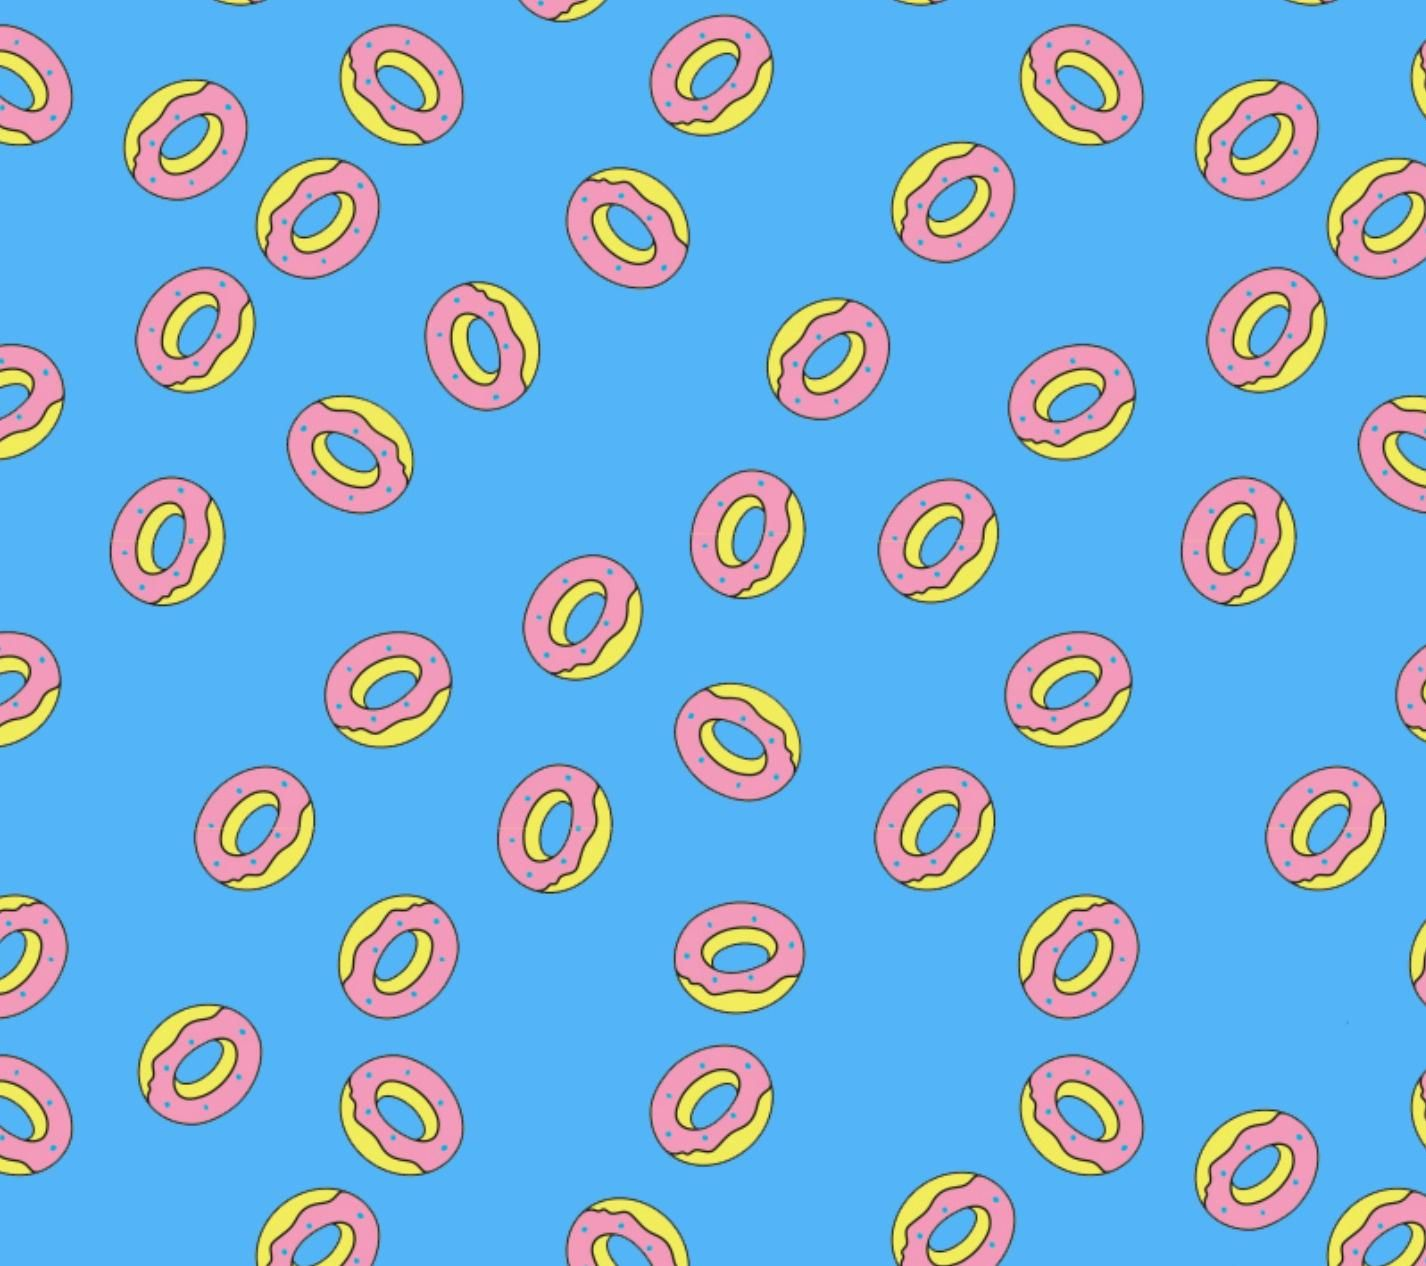 1426x1266 Odd Future Donuts Wallpaper by Trixie50 - c6 - Free on ZEDGE™